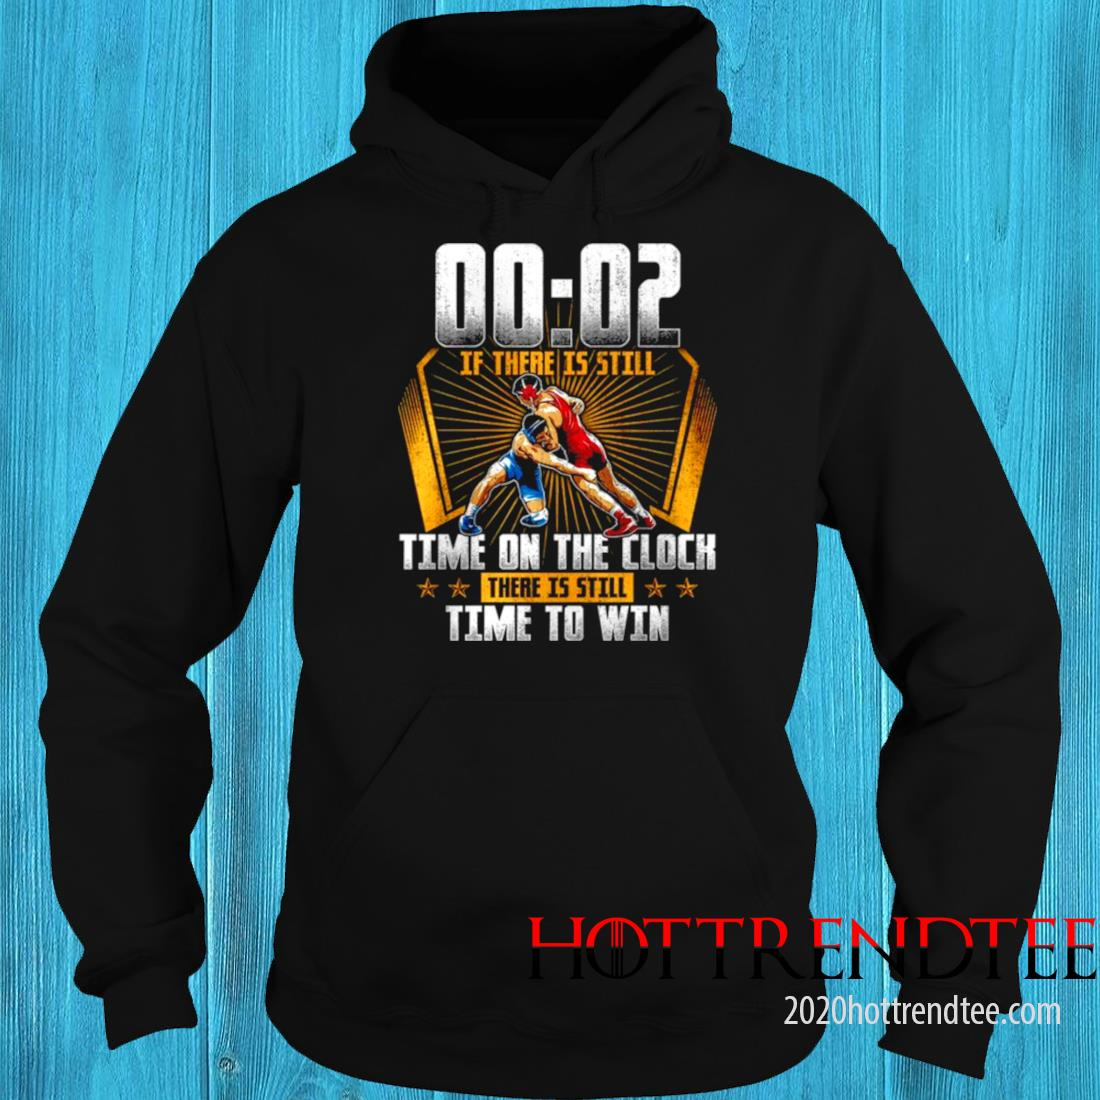 00 02 Of There Is Still Time On The Clock There Is Still Time To Win Shirt 3